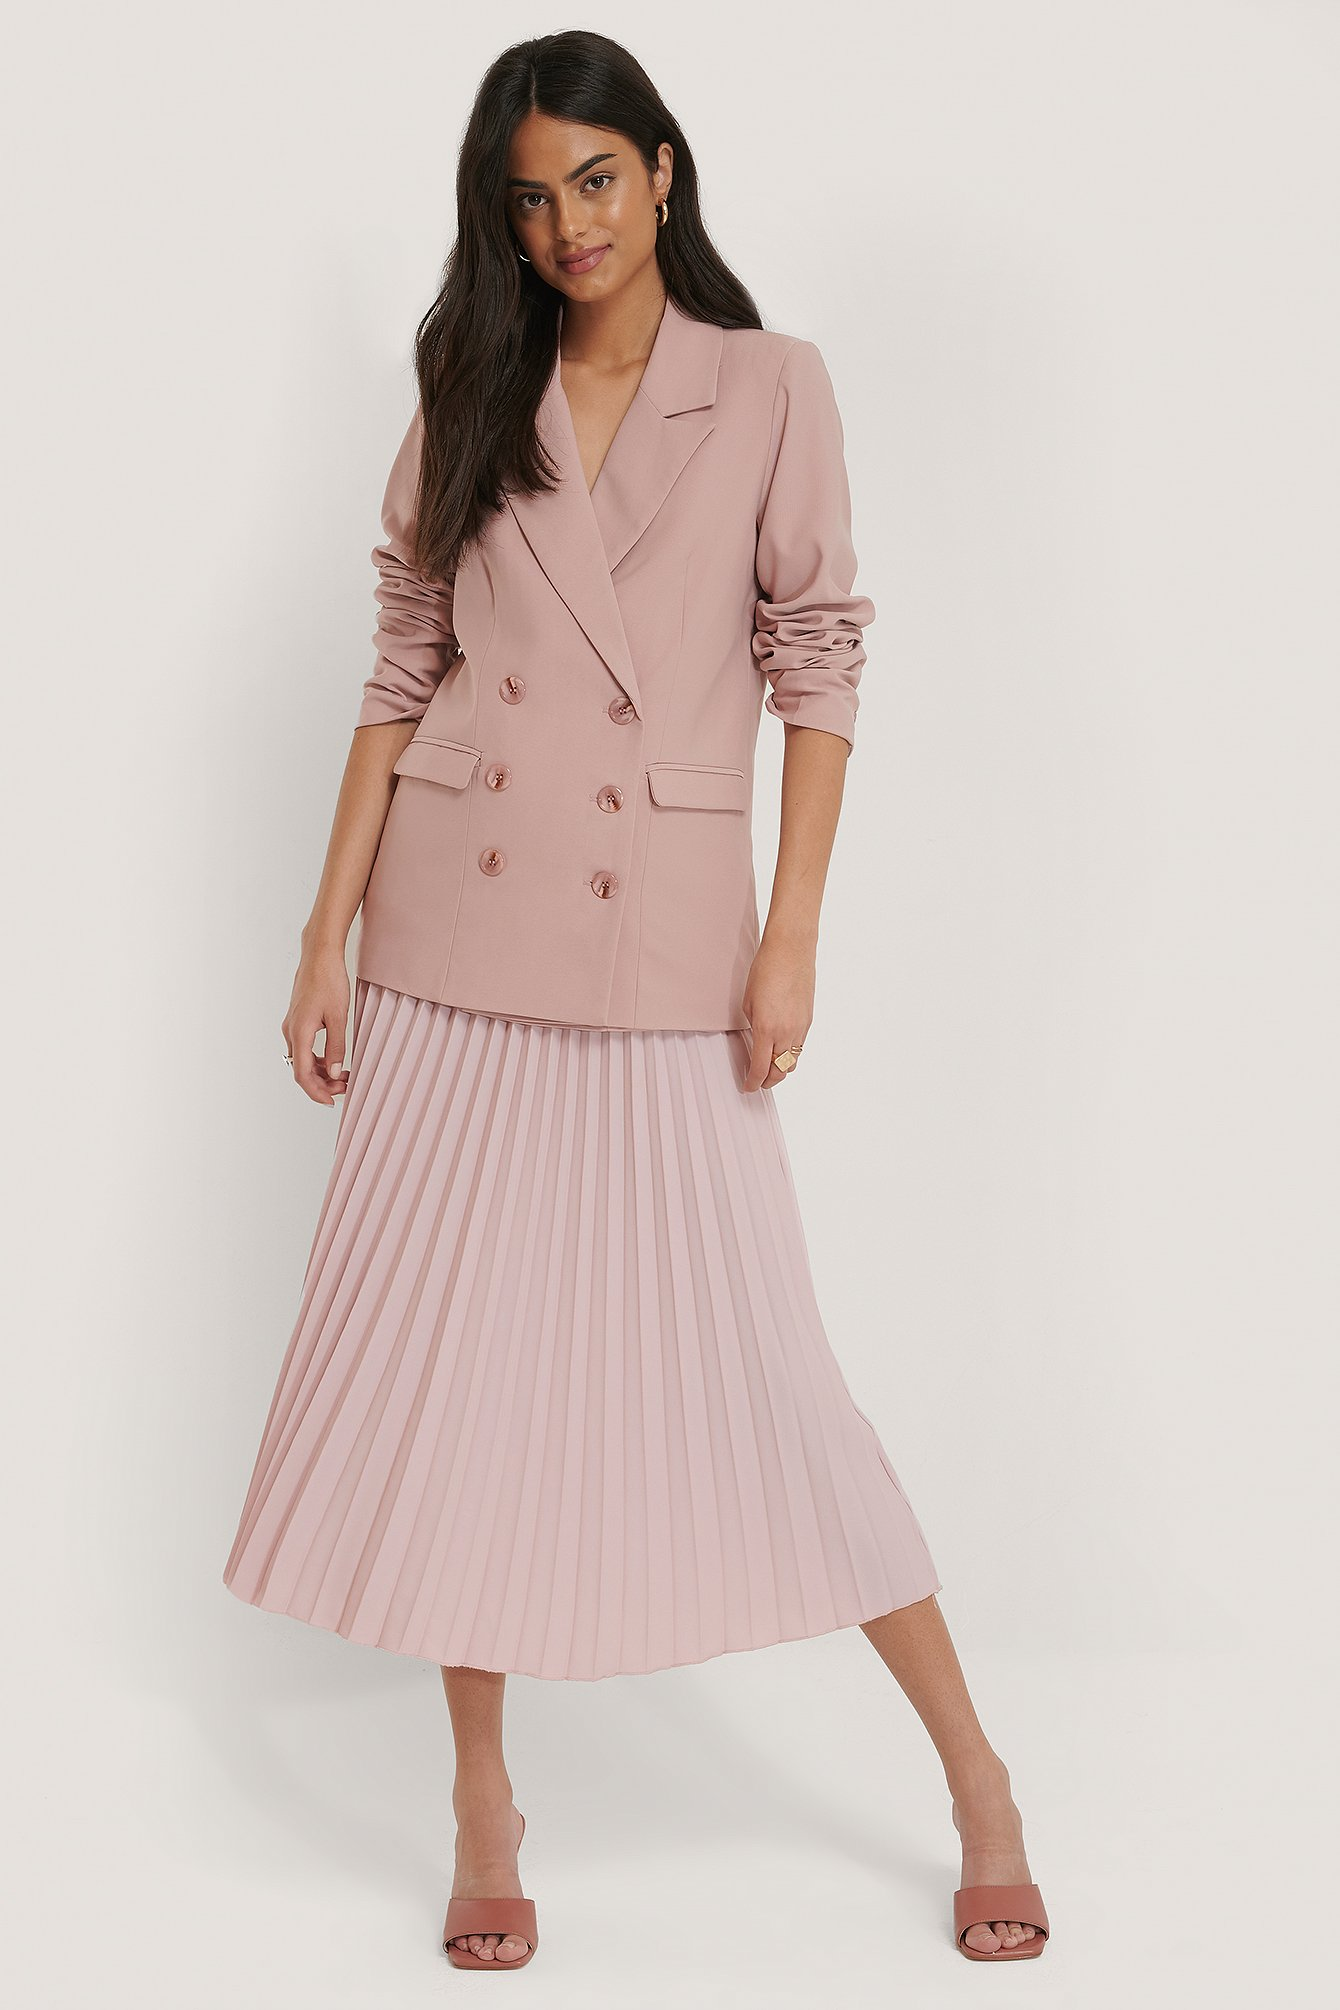 pink blazer and pink pleated skirt are pleated skirts in style